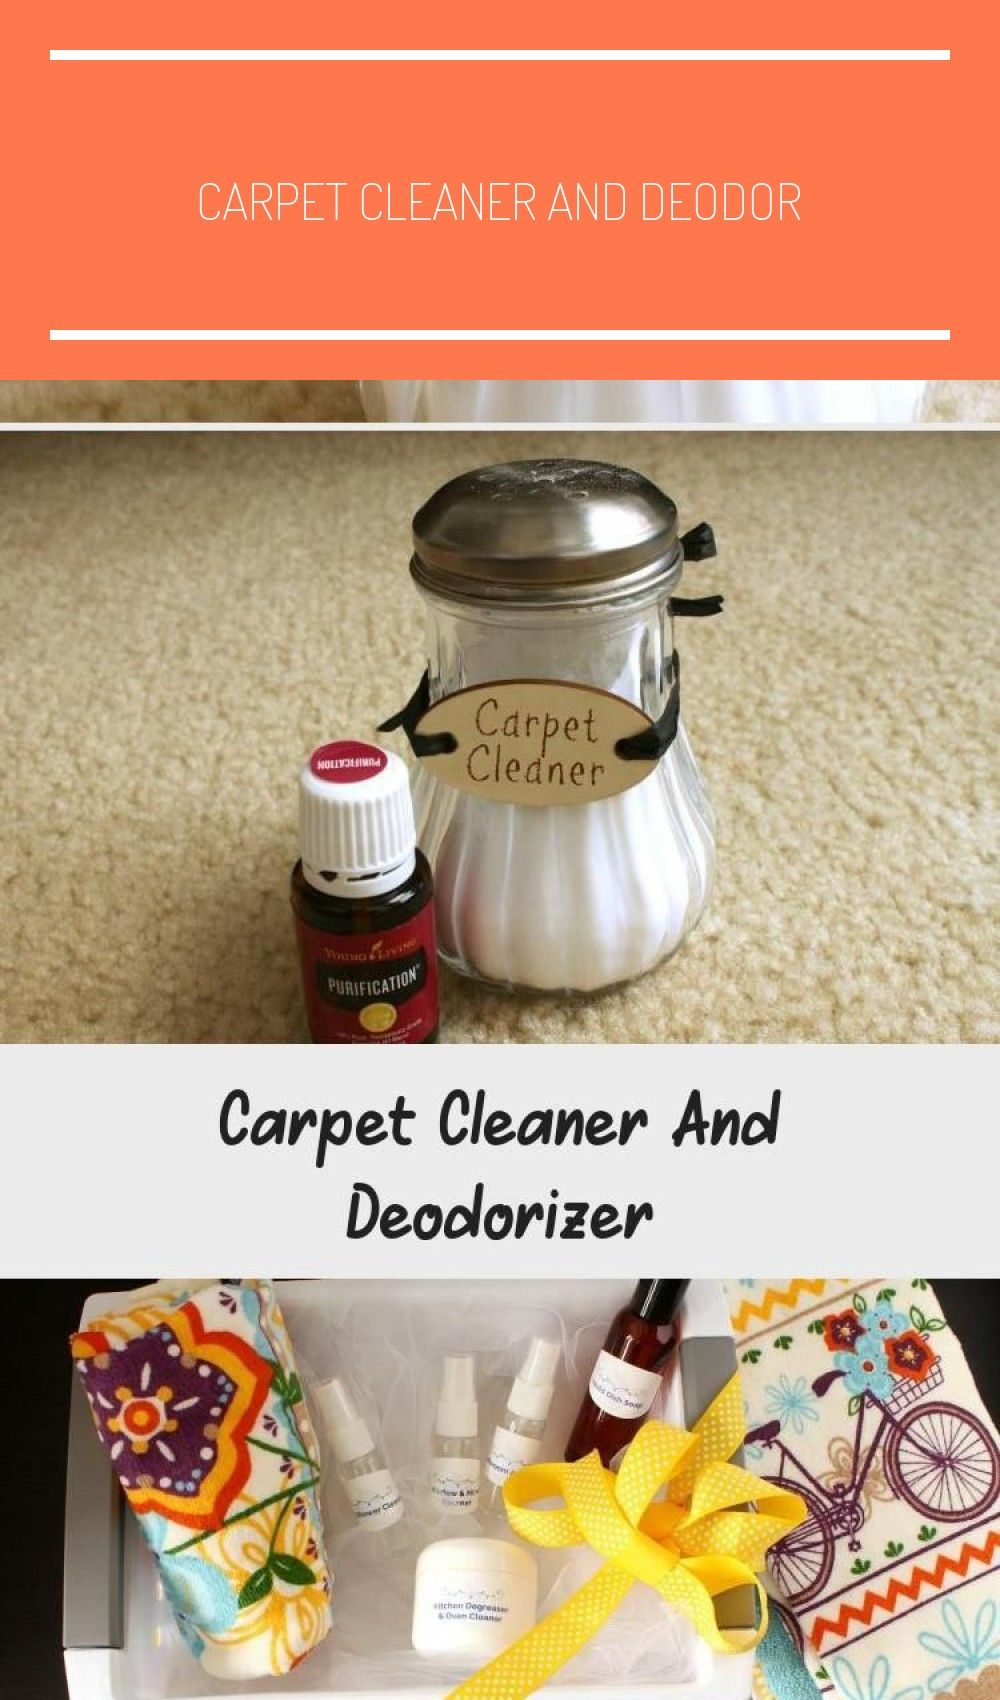 Carpet Cleaner and Deodorizer that neutralizes and eliminates odor clears the a  carpet cleaner Carpet Cleaner and Deodorizer that neutralizes and eliminates odor clears...